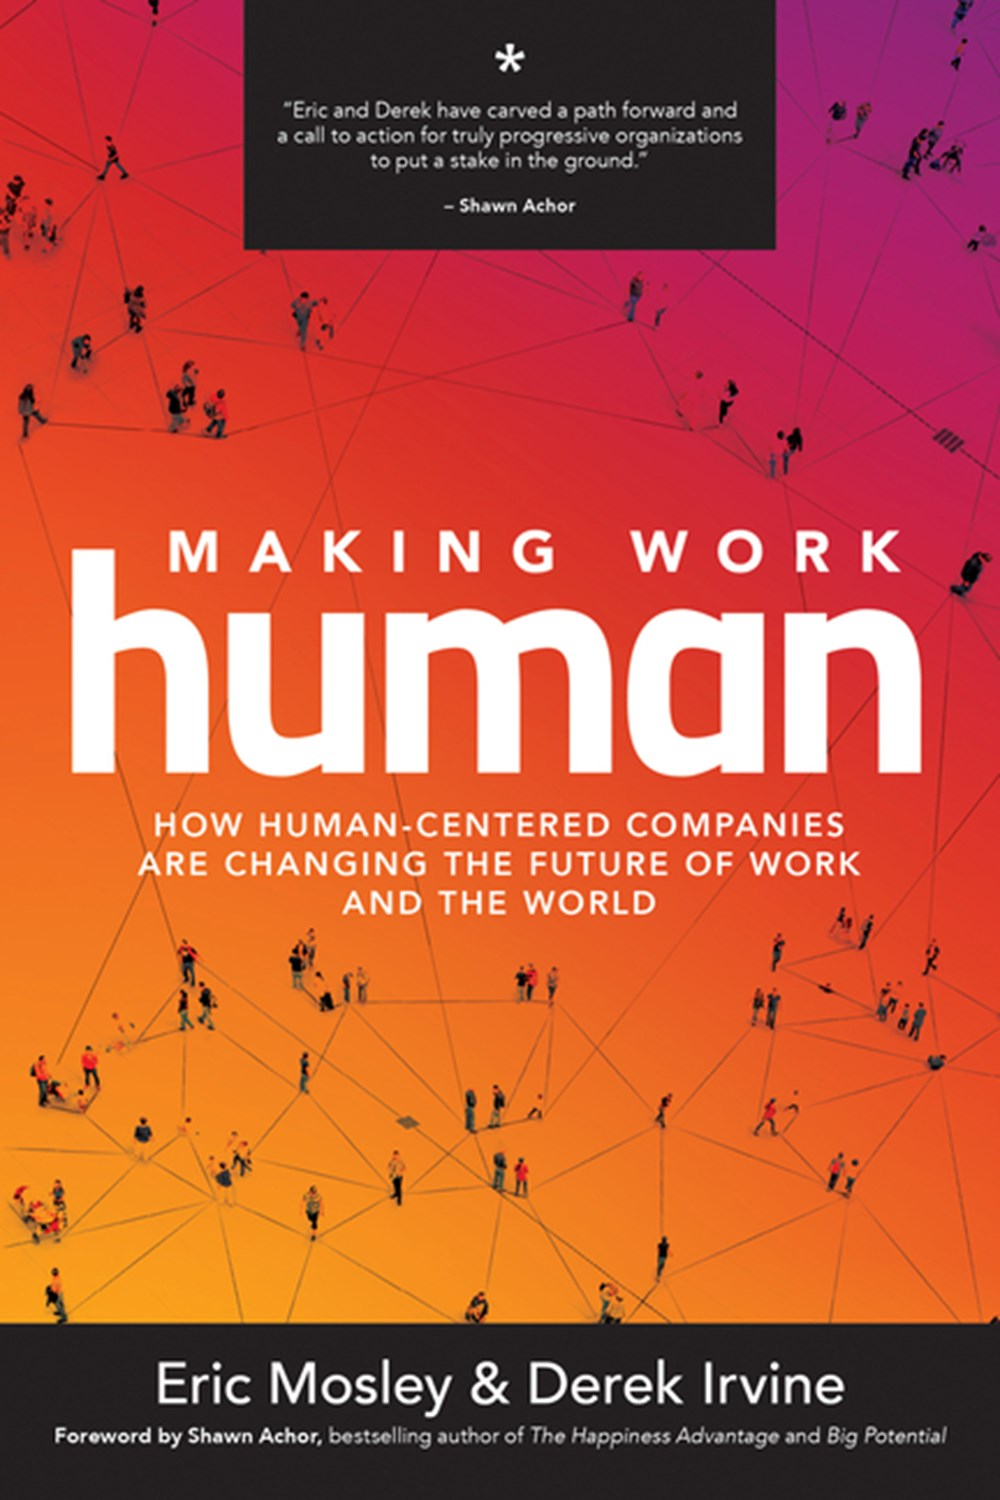 Making Work Human How Human-Centered Companies Are Changing the Future of Work and the World